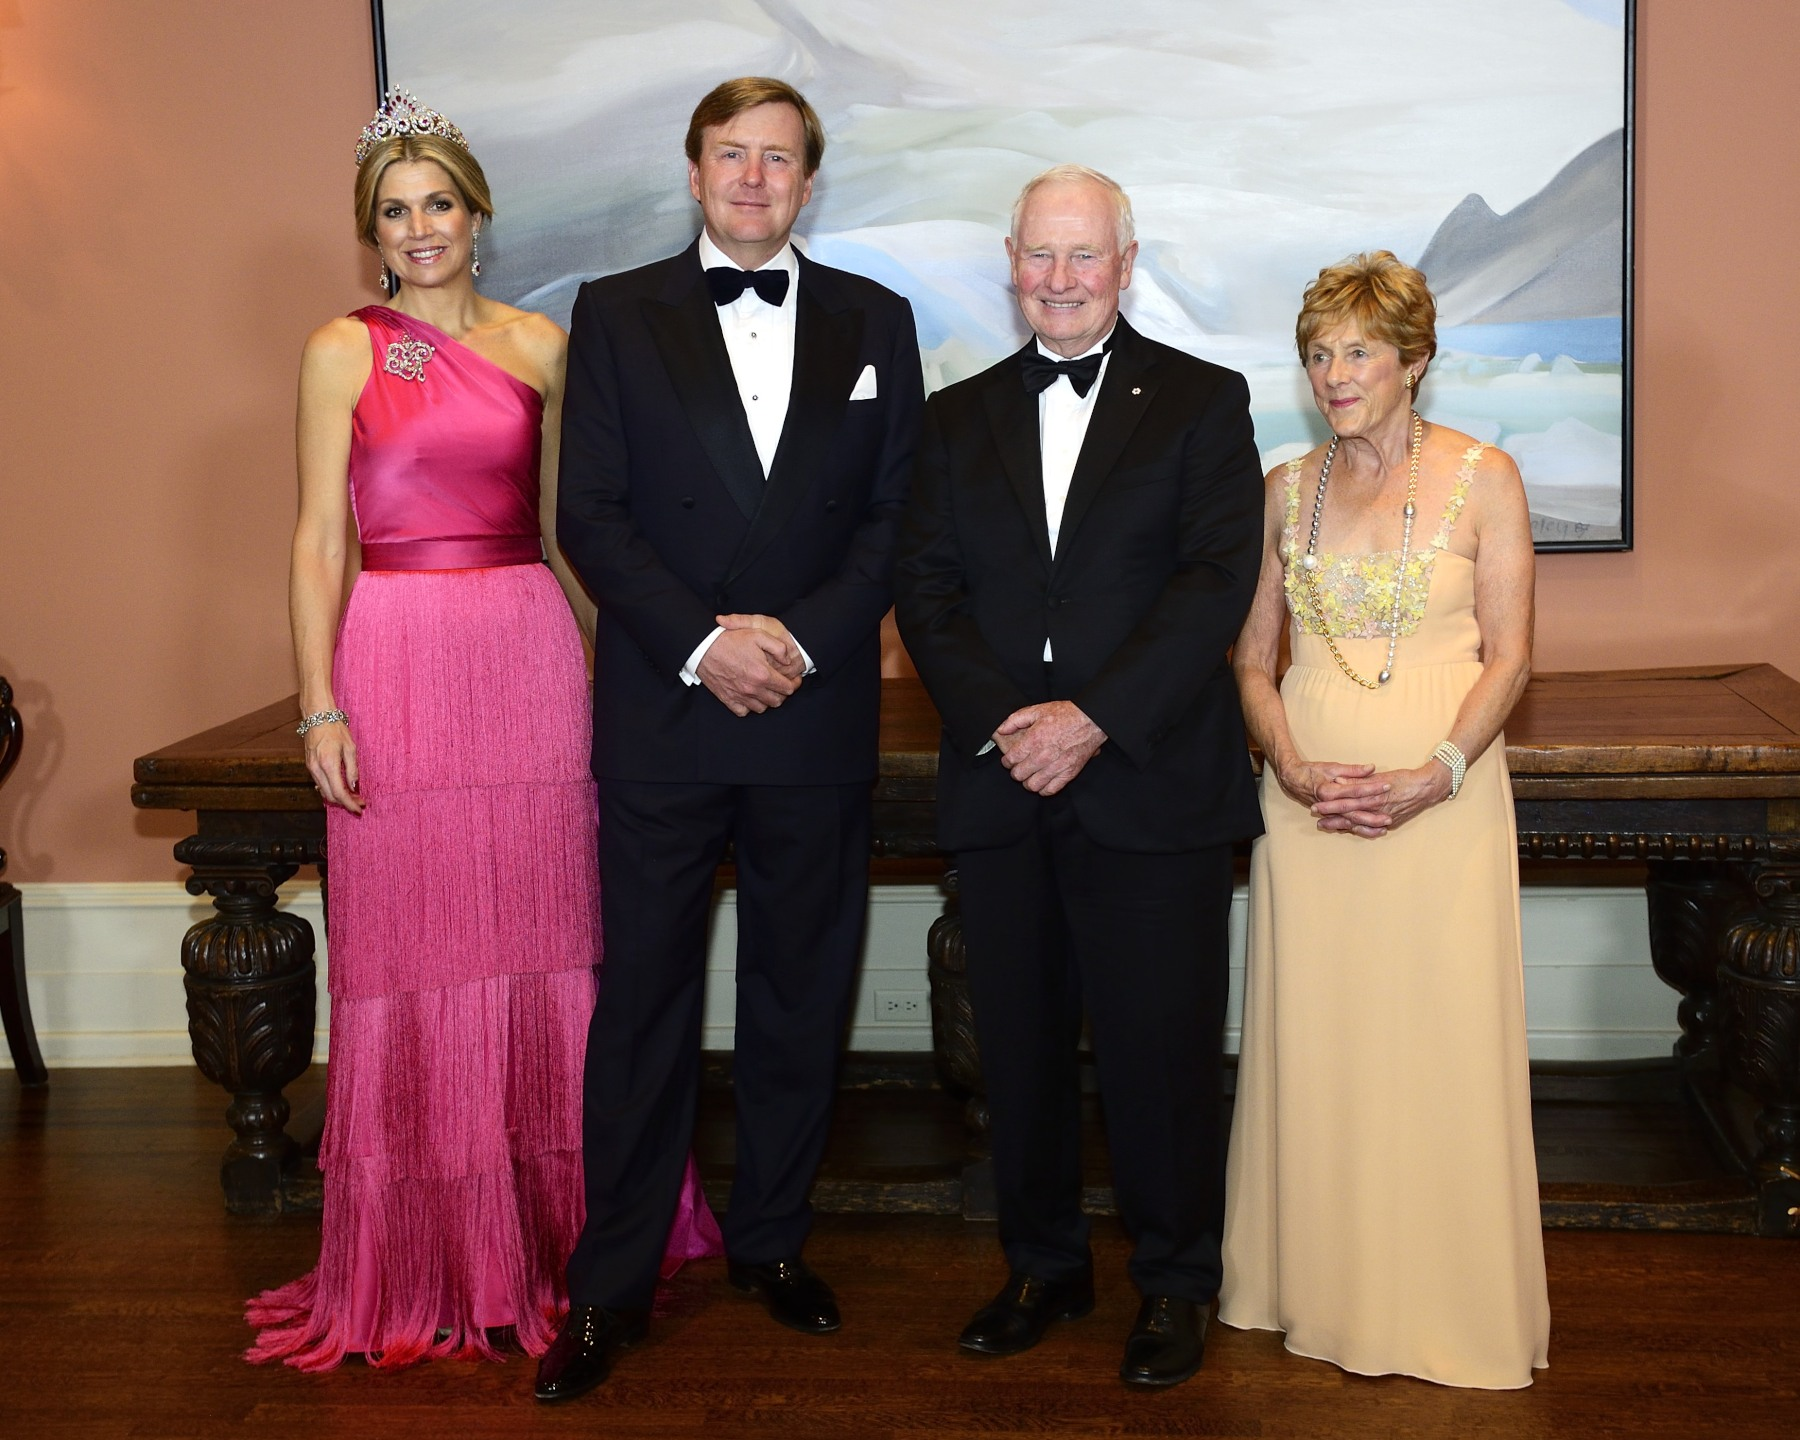 Their Excellencies hosted a State dinner in honour of Their Majesties' visit to Canada.